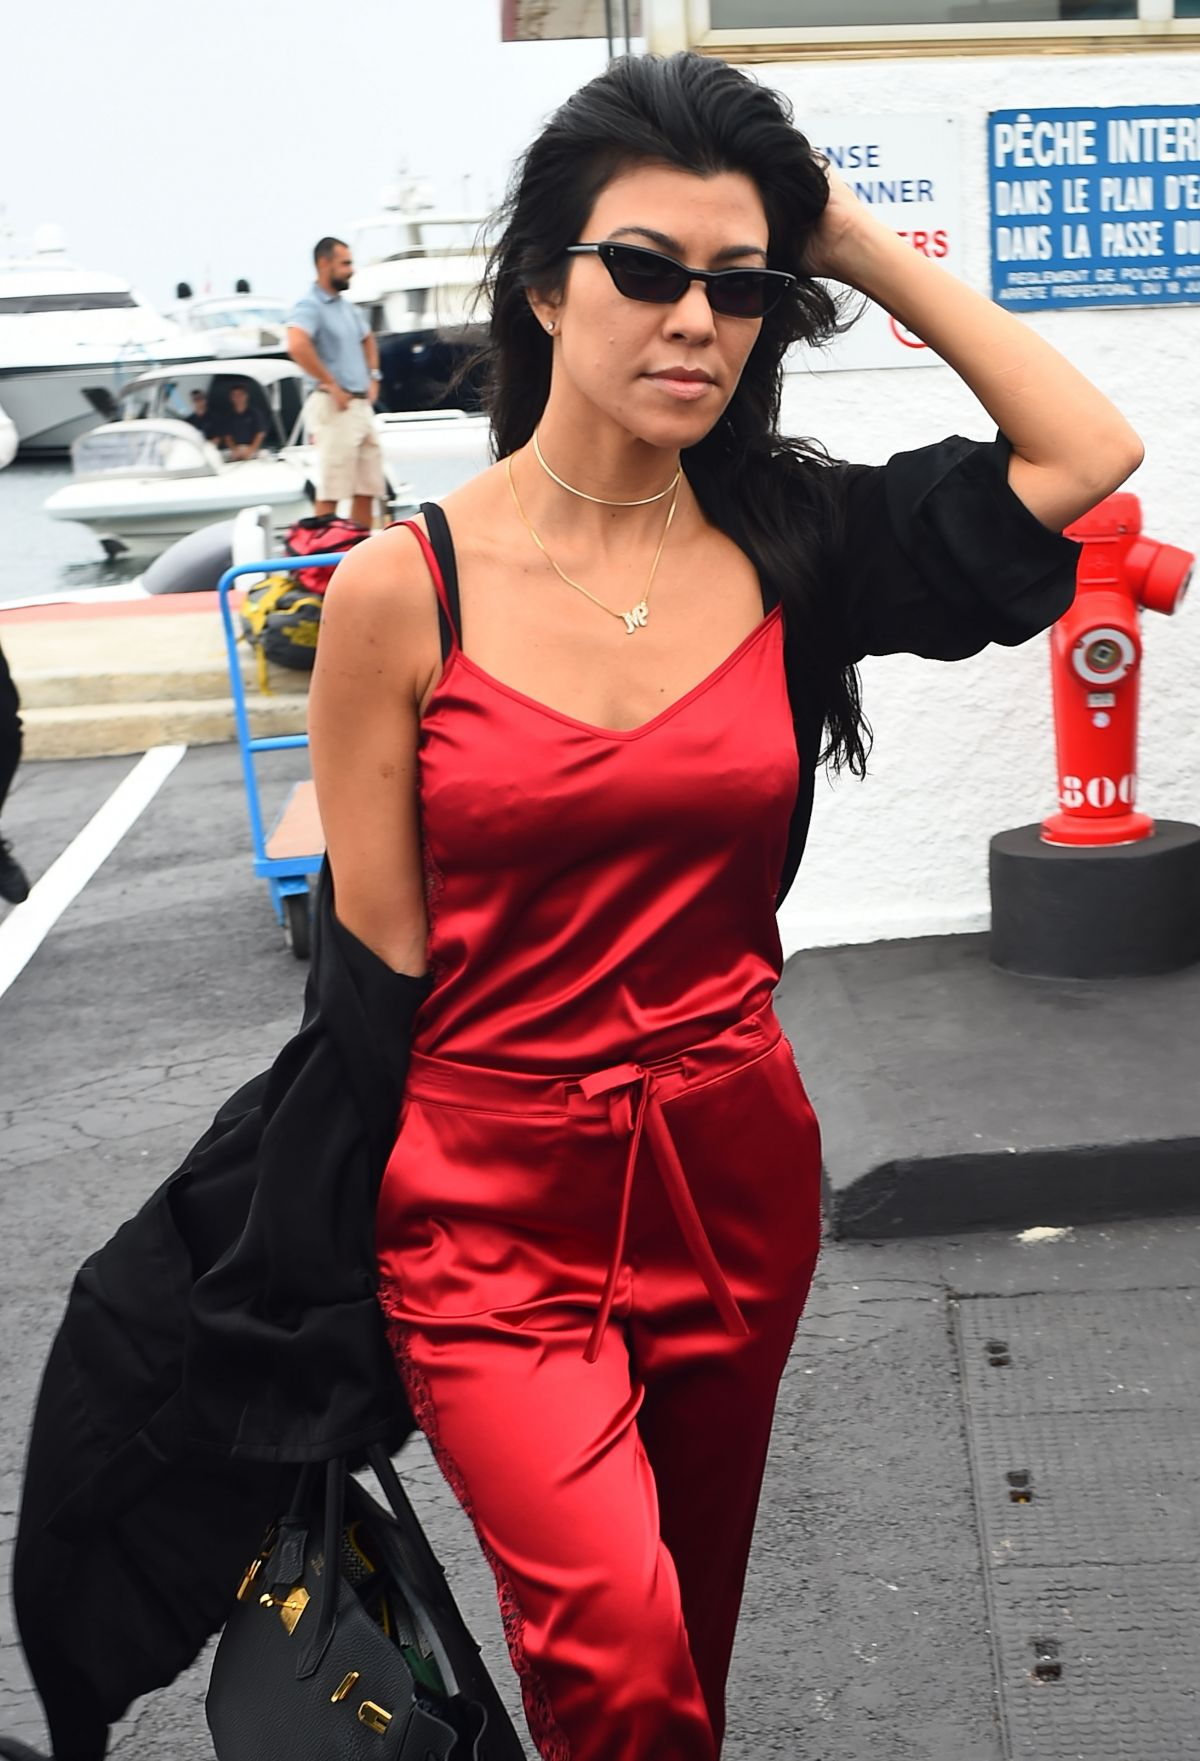 Kourtney kardashian boarding a plane in cannes 05 26 2017 for What does kourtney kardashian do